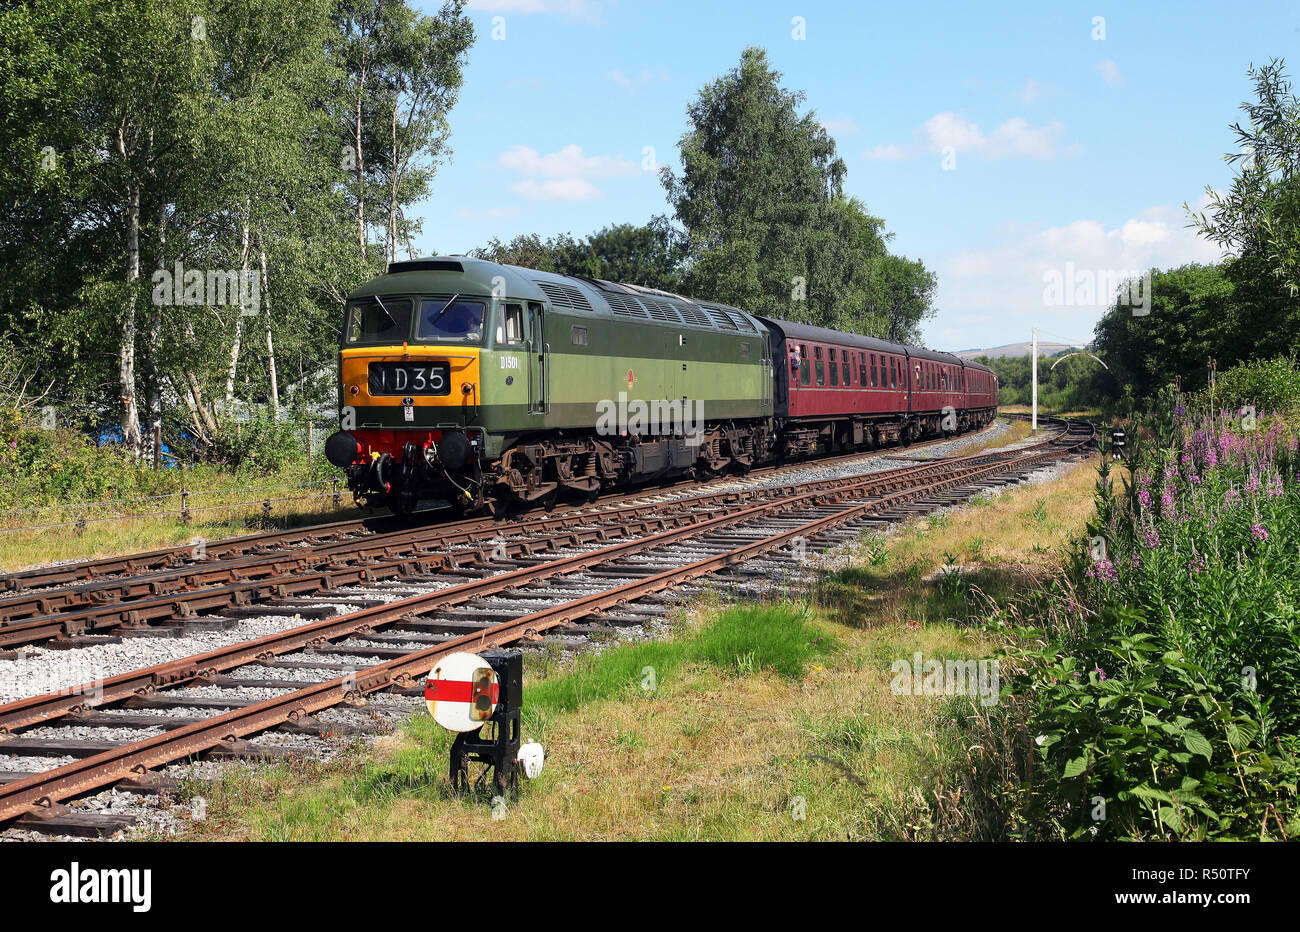 D1501 approaches Ramsbottom on the East Lancs Railway on 7.7.18. Class 47. - Stock Image